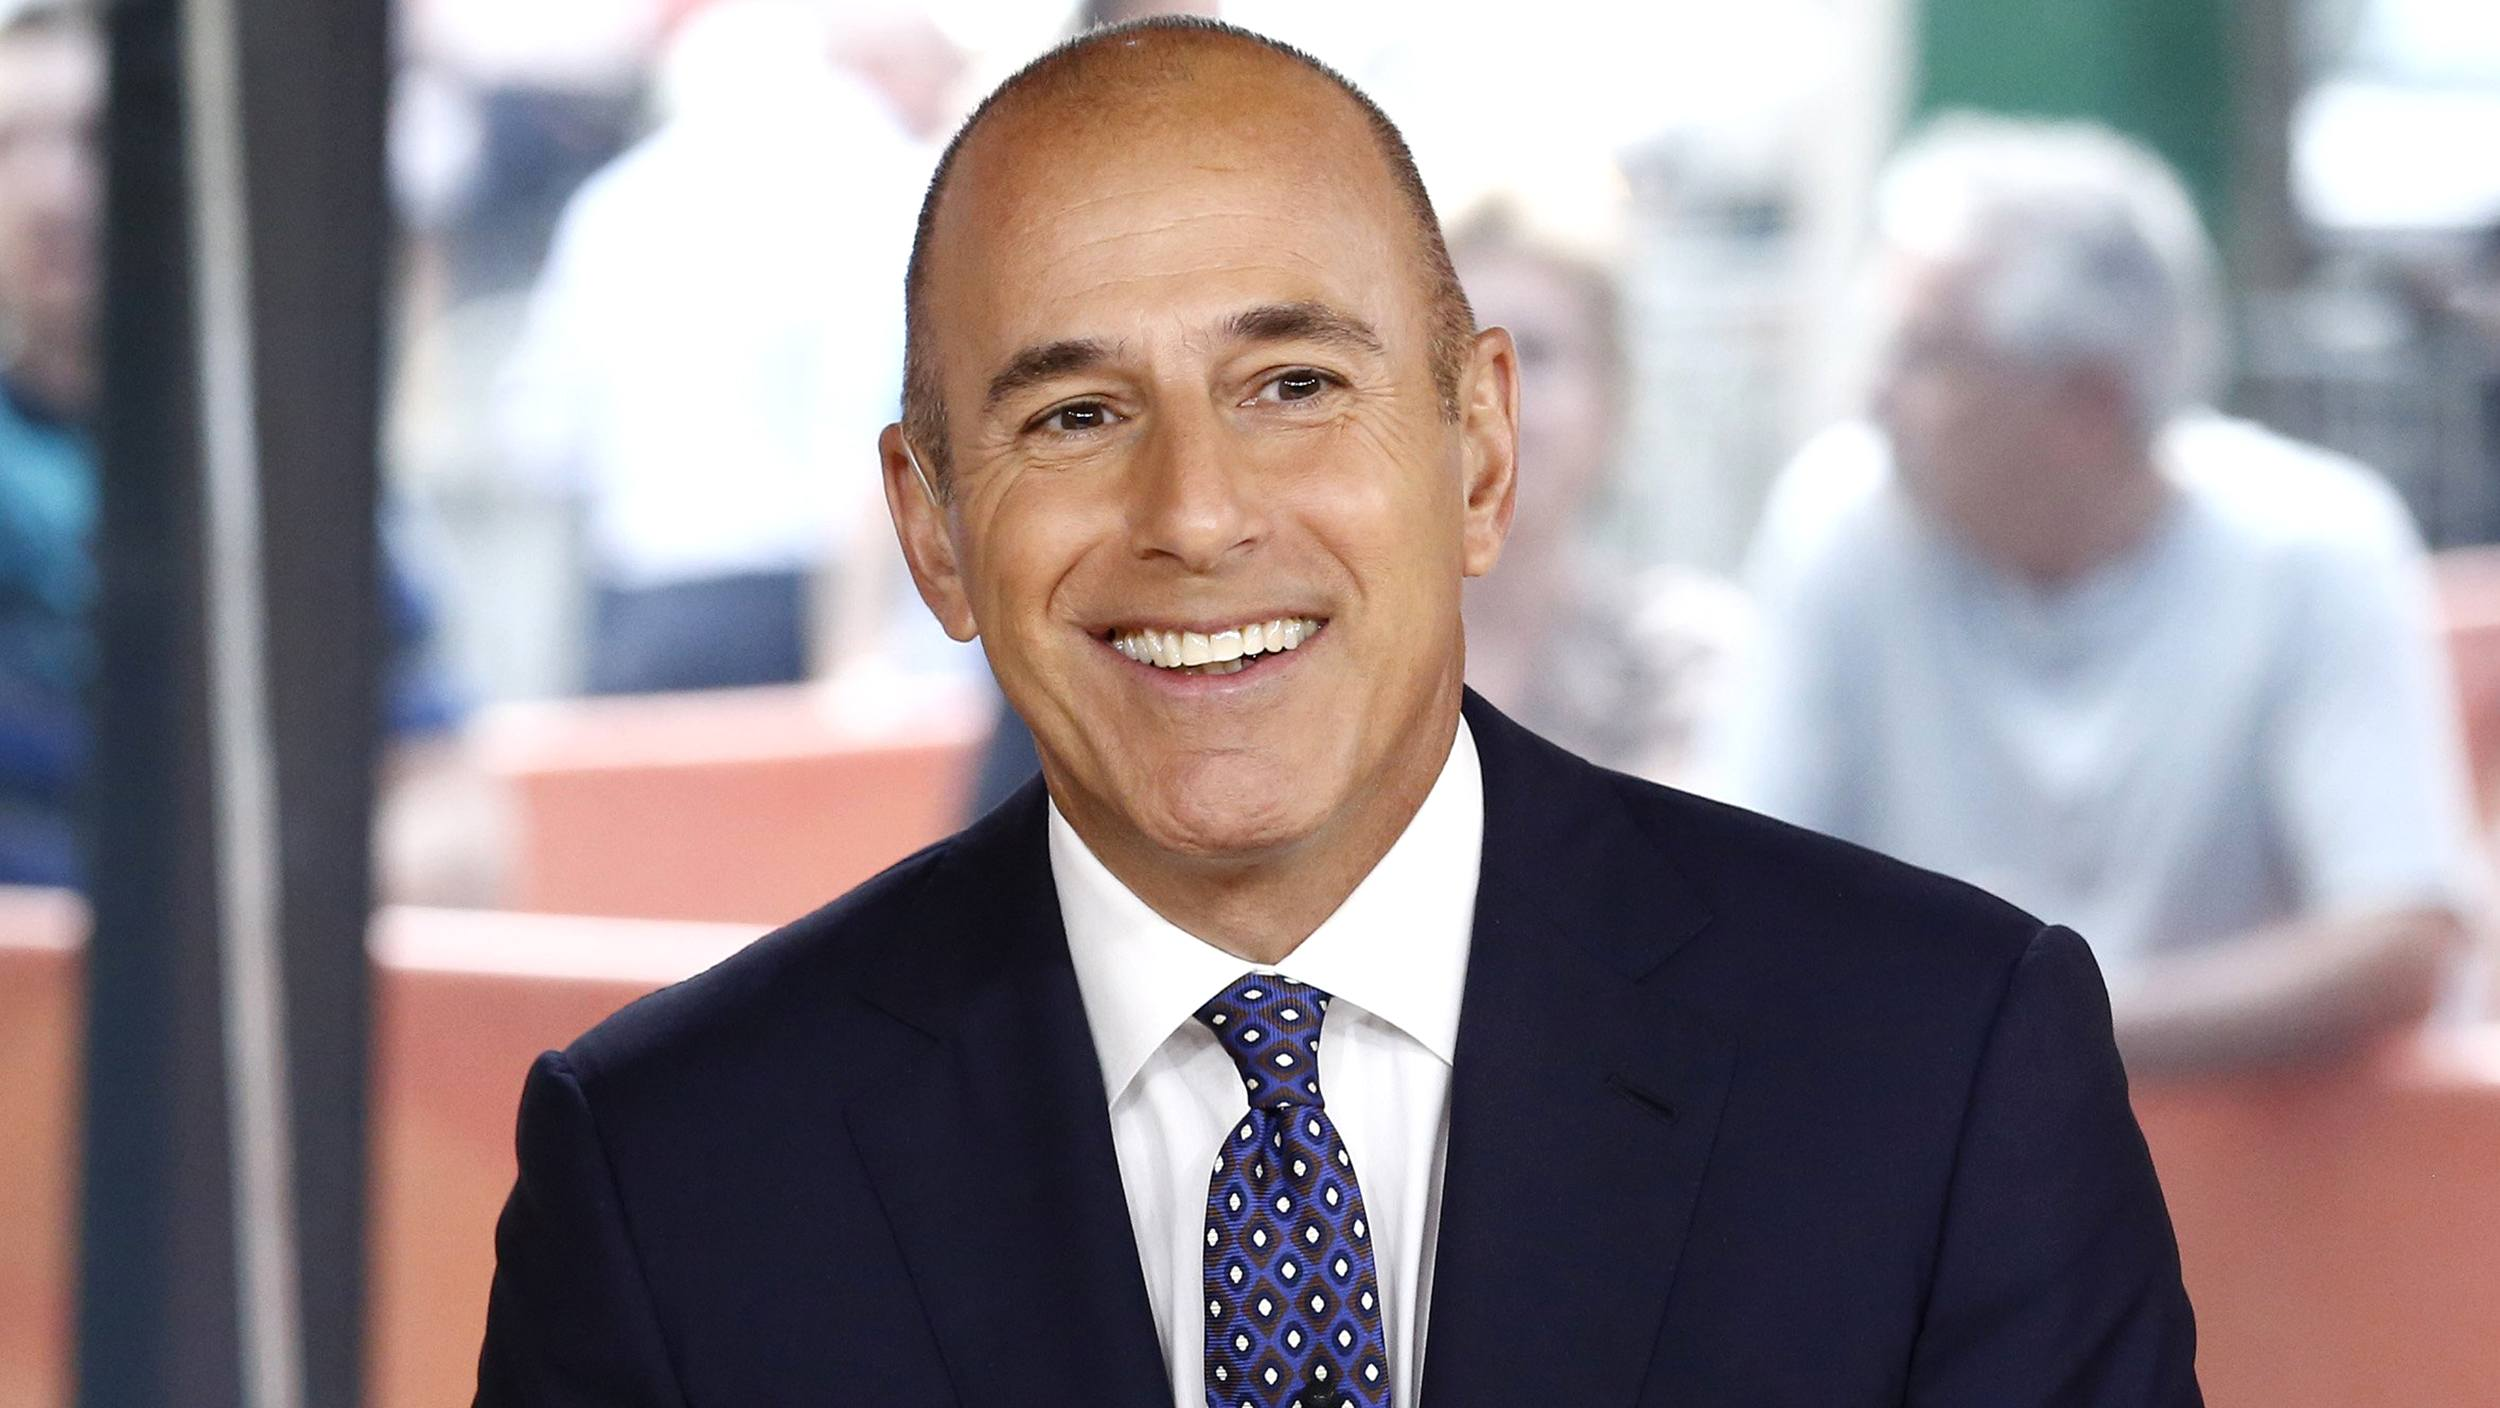 matt lauer smiles on set of Today in a dark suit and speckled tie